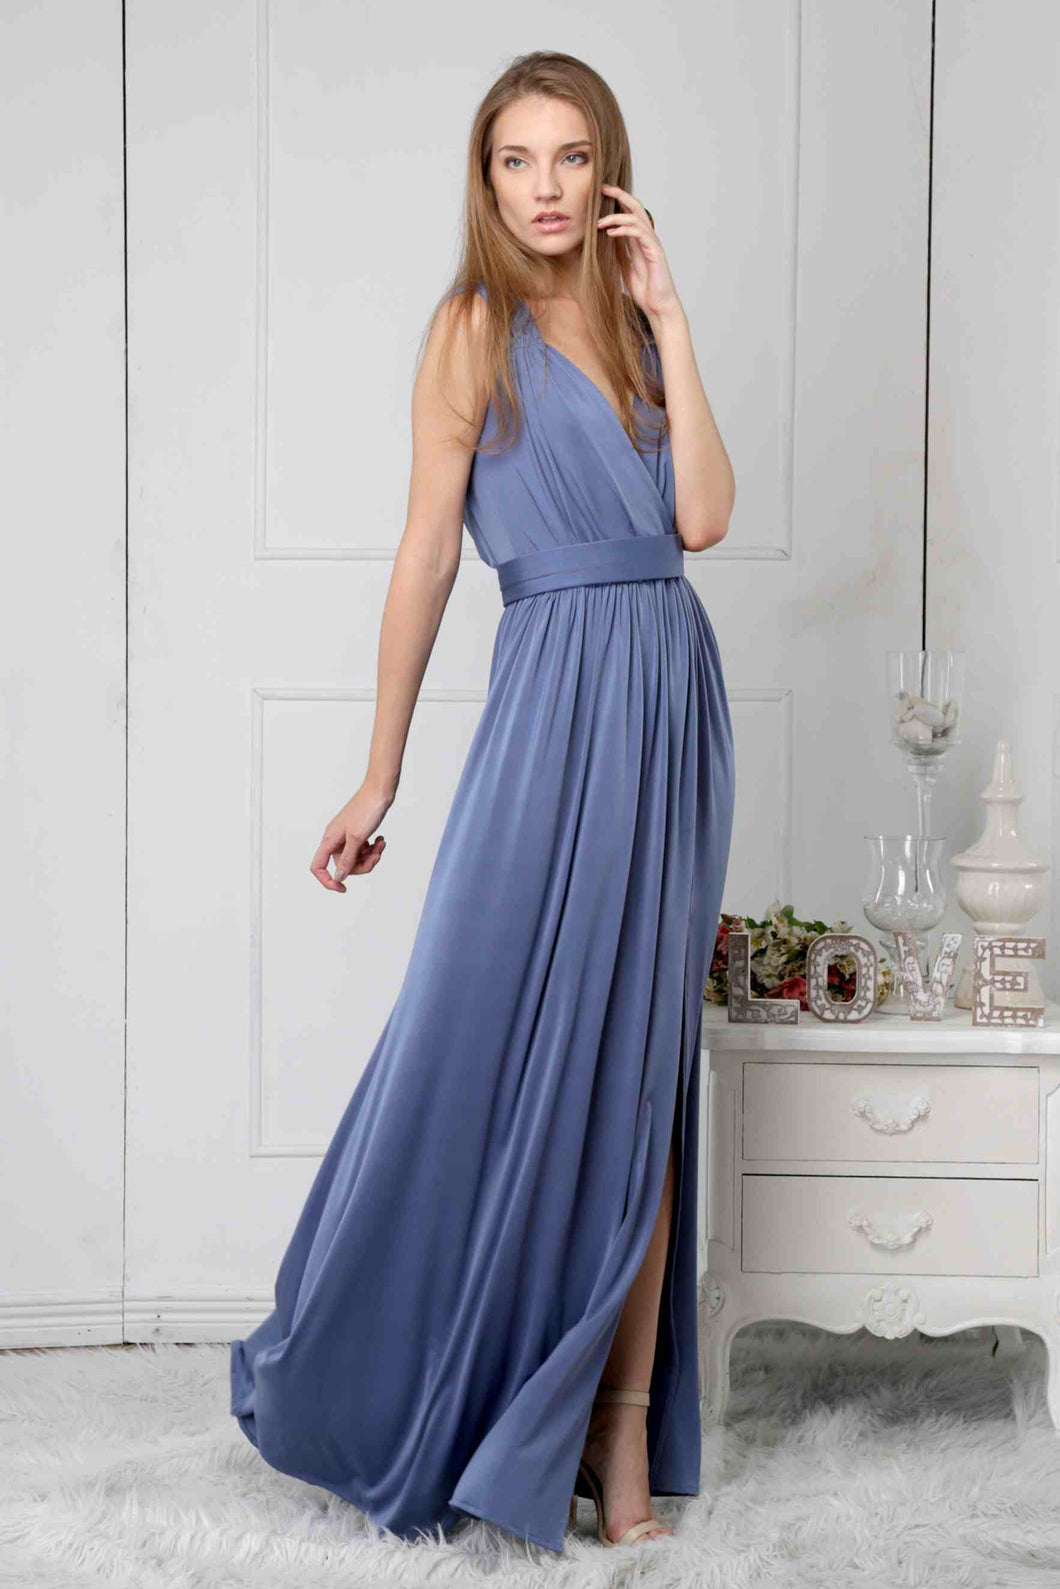 Gertrude dress by Pia Gladys Perey Perth Bridesmaids Dresses Perth Bridal Boutique